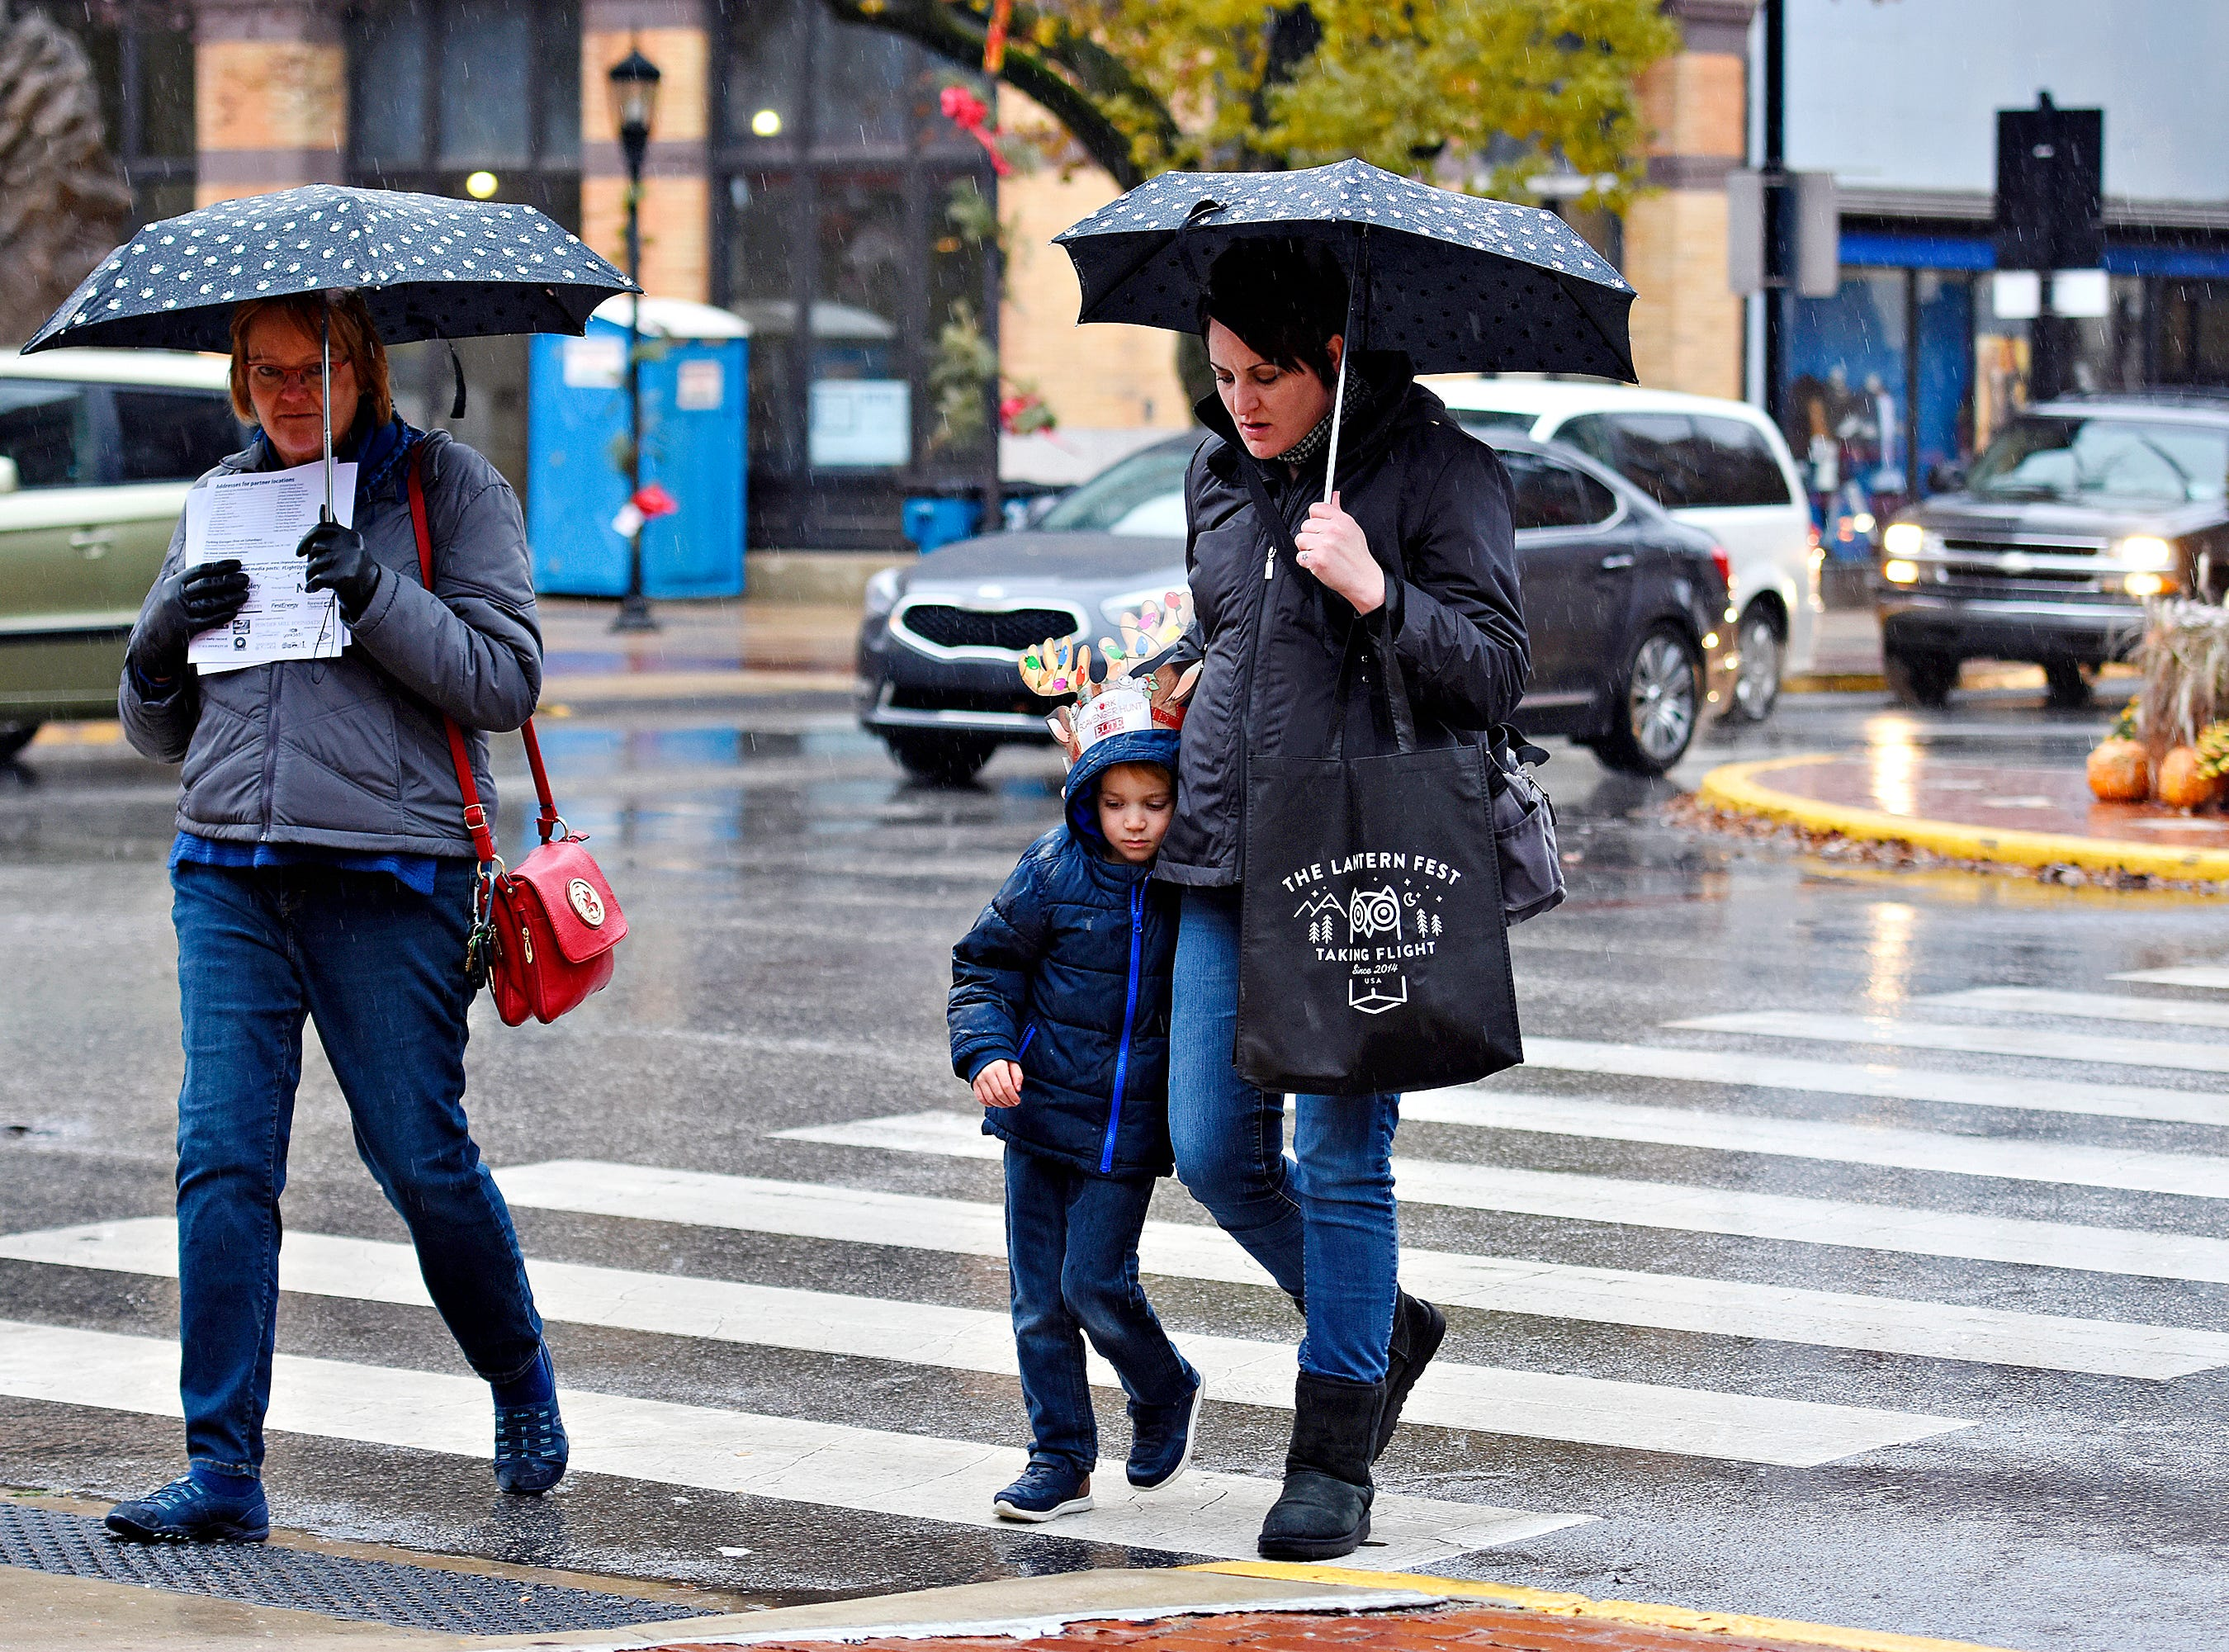 From left, Kathy Must, of Lower Windsor Township, Oliver Haines, 4, and his mother Melissa Musti, both of York City, cross George Street in the rain during Light Up York festivities in York City, Saturday, Dec. 1, 2018. Dawn J. Sagert photo